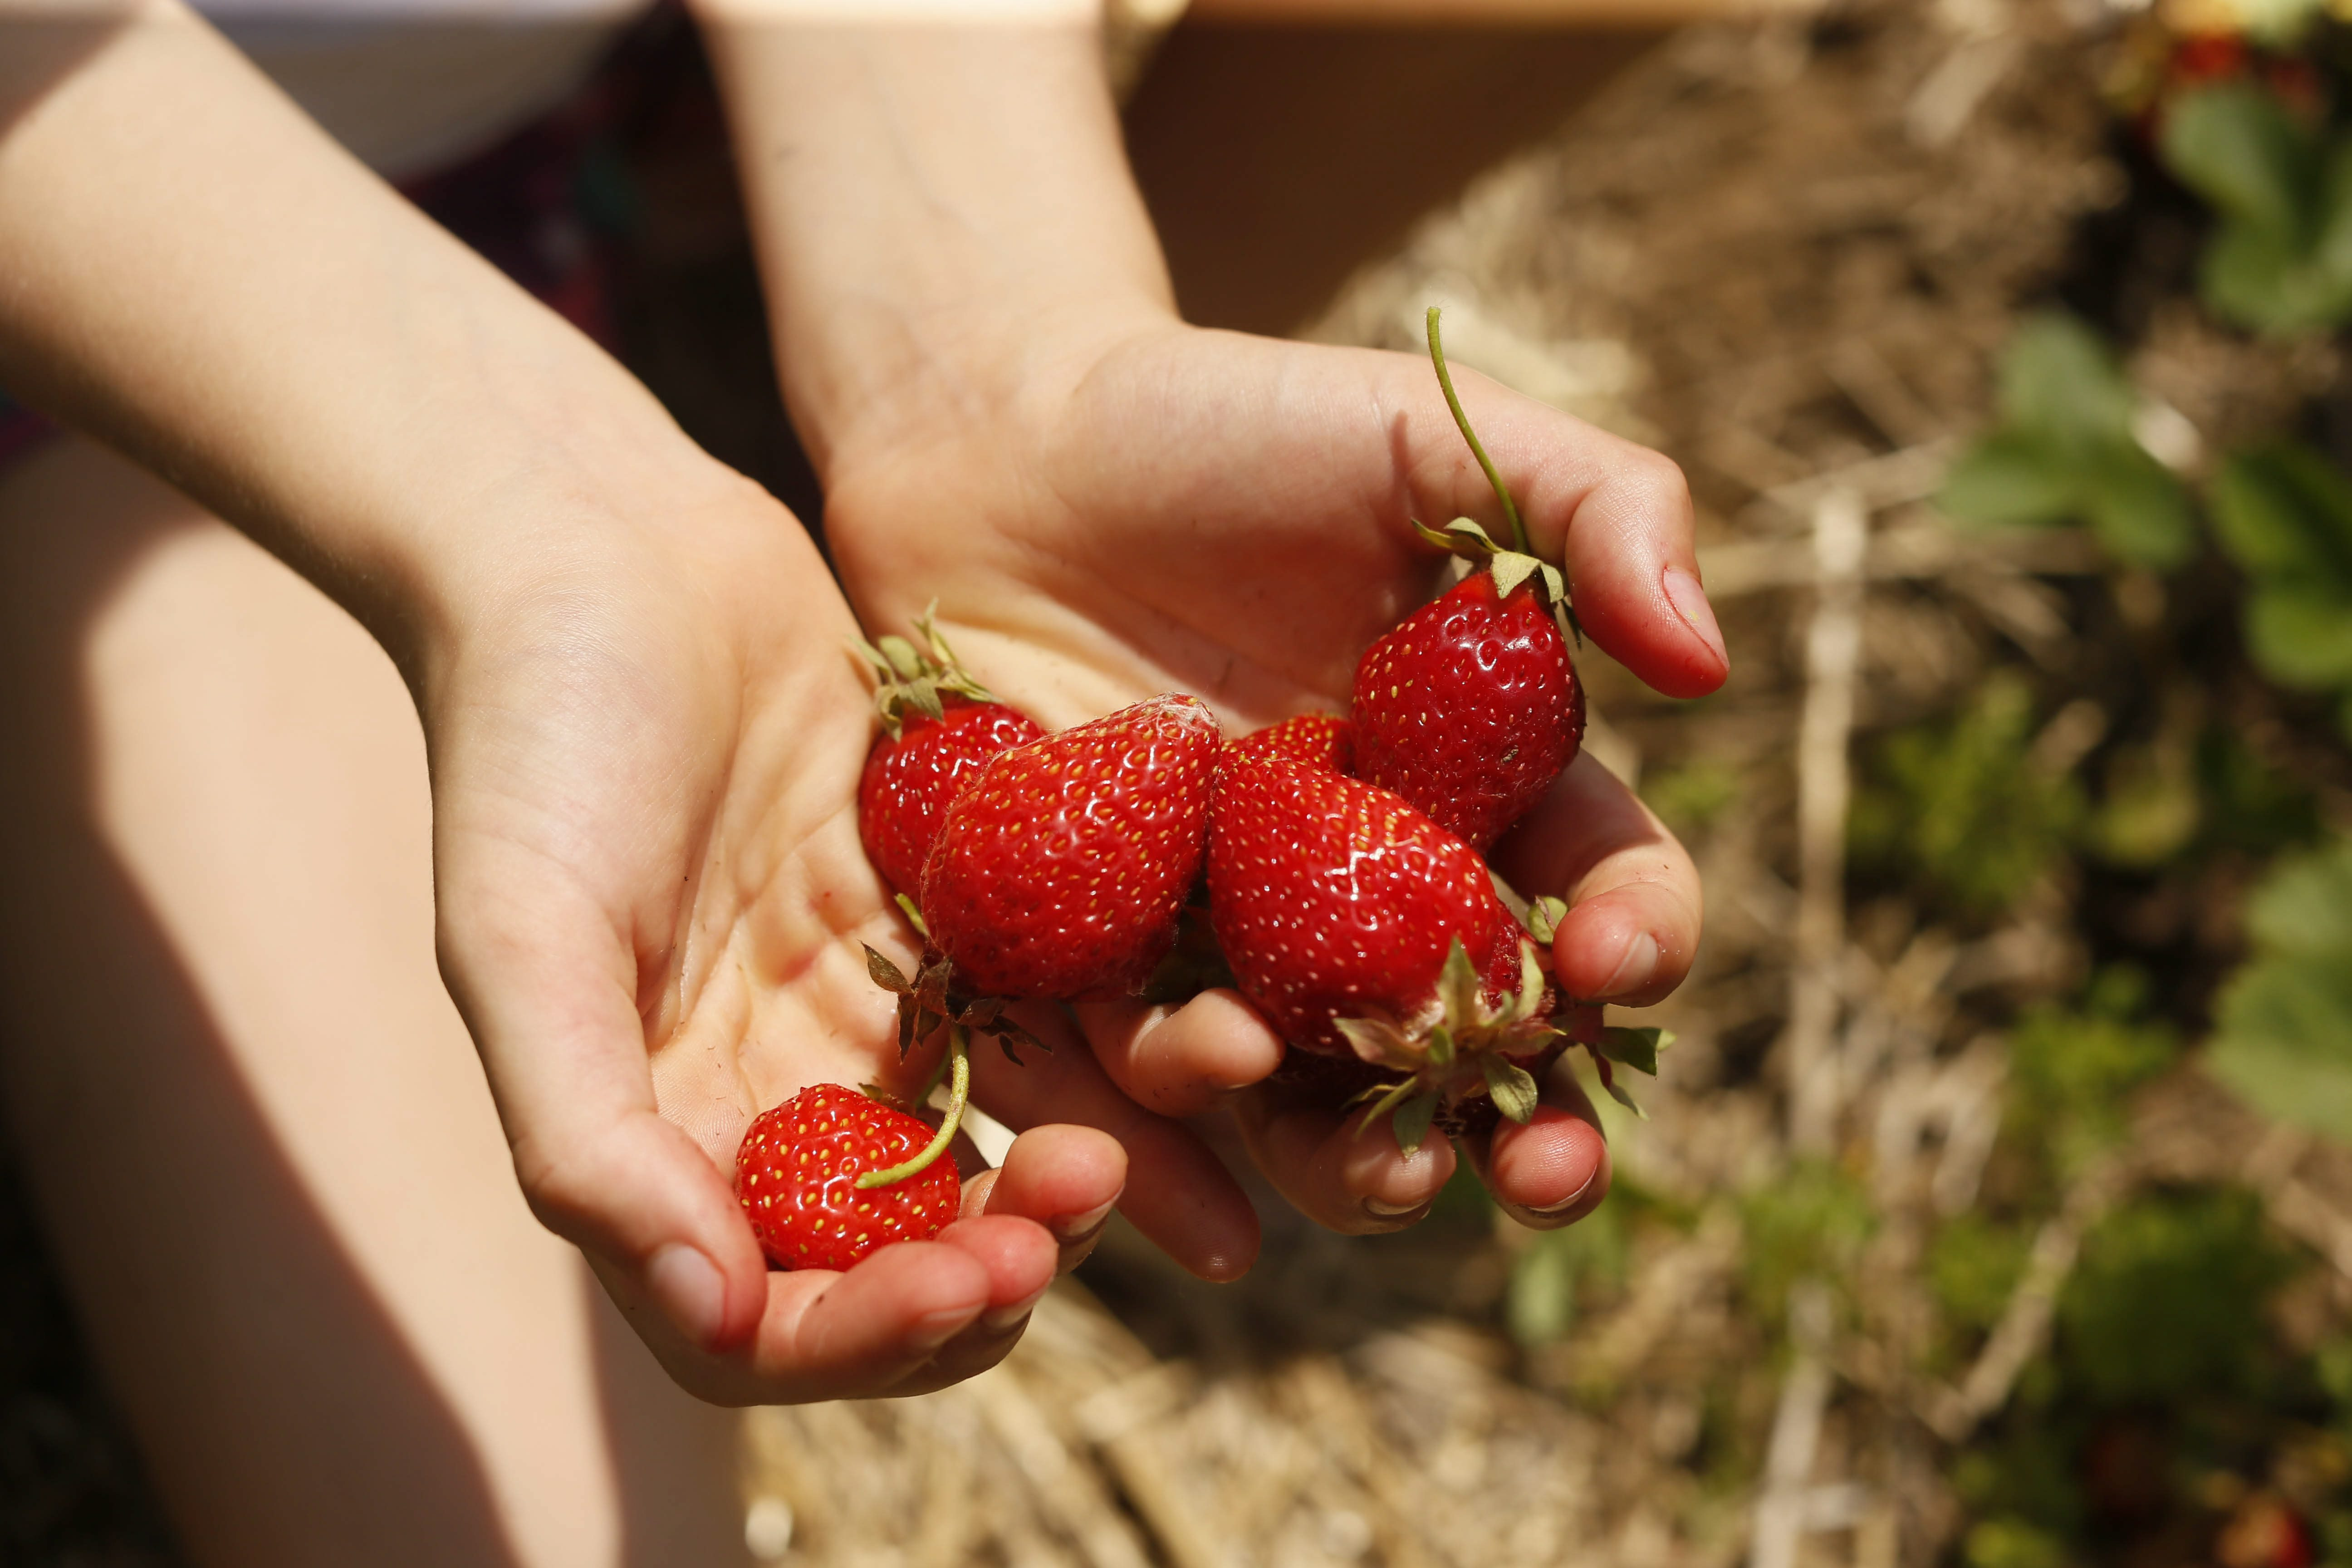 There are many places locally where you can pick  your own fruit, including strawberries.  (Derek Gee/Buffalo News file photo)